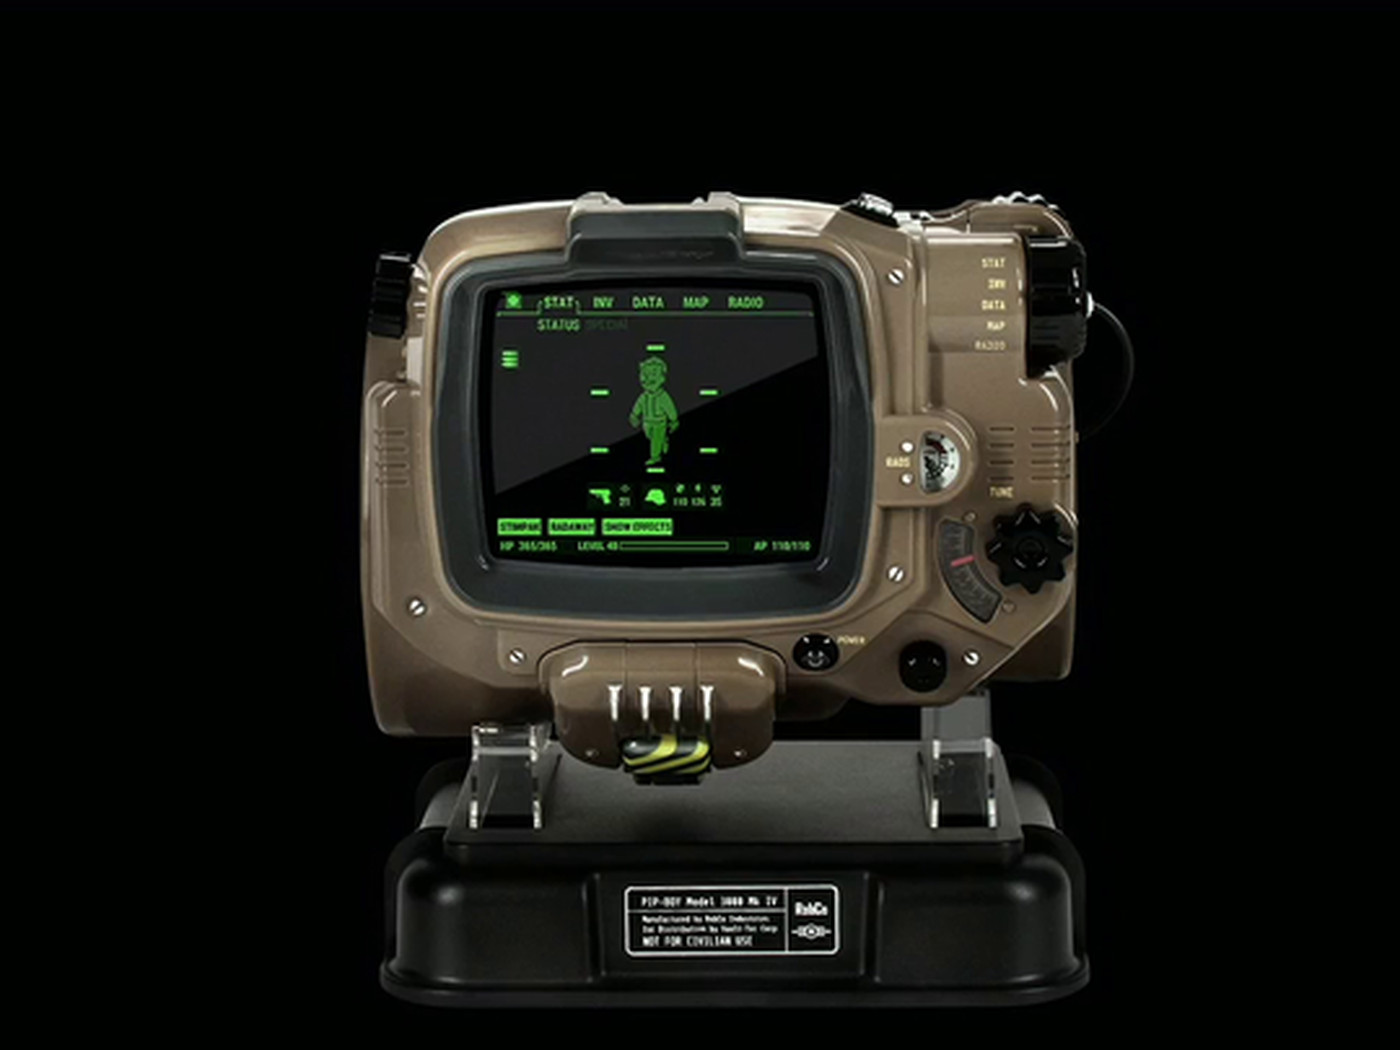 The Pip-Boy is fabulous in Fallout 4 — and it's real